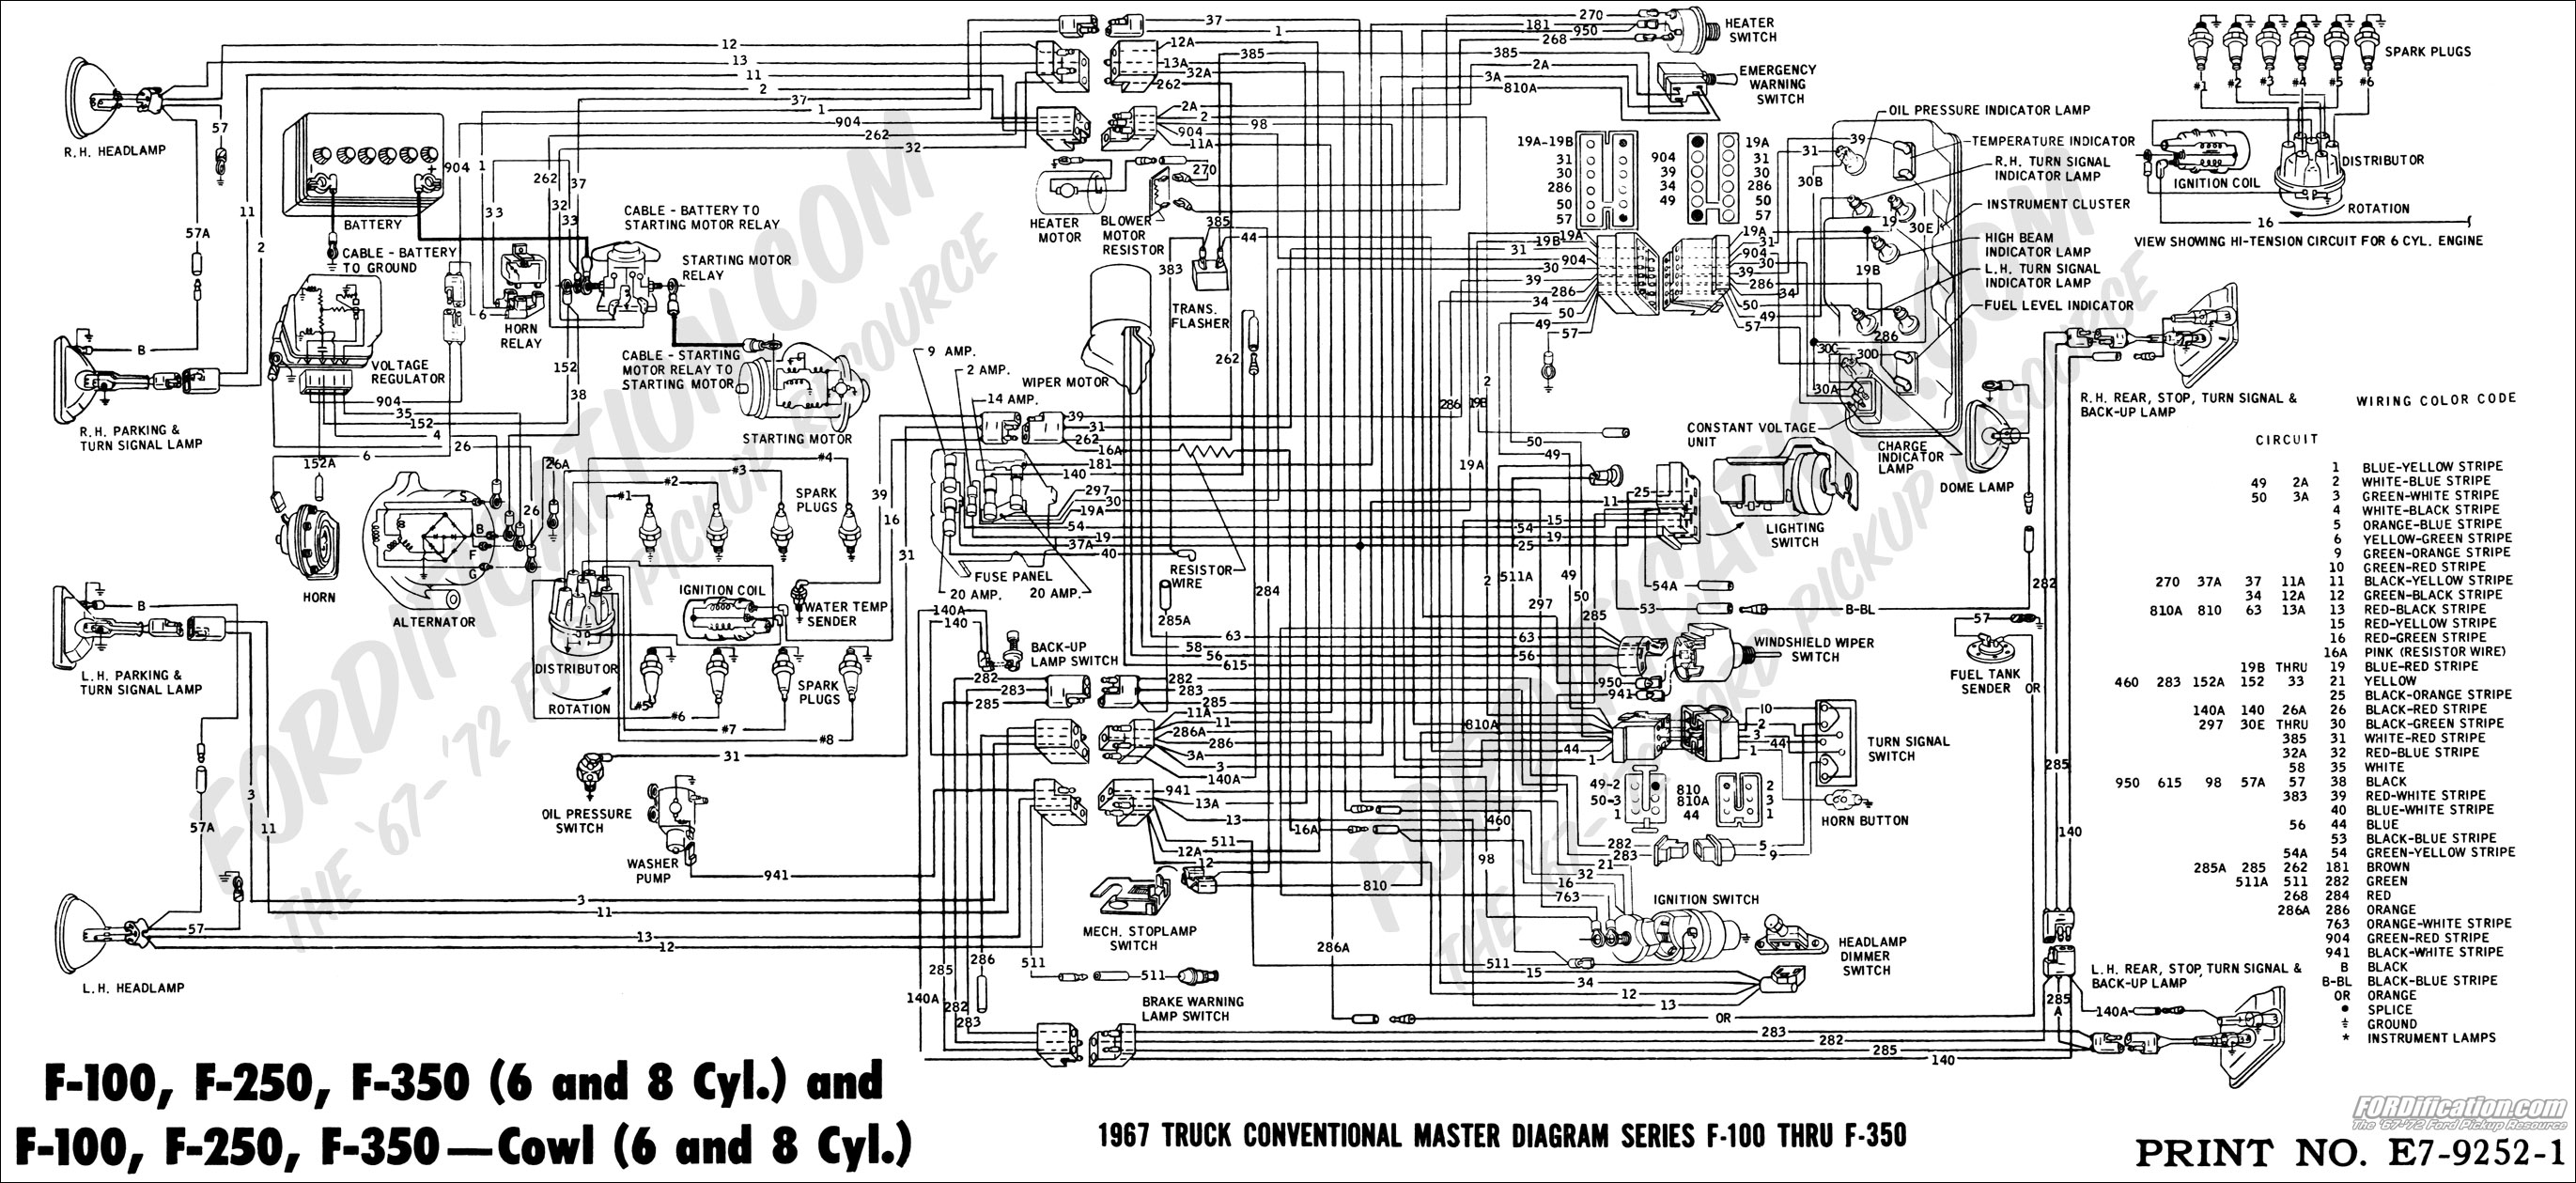 ford truck technical drawings and schematics section h wiring rh fordification com 79 ford f150 wiring diagram 73-79 ford truck wiring diagram